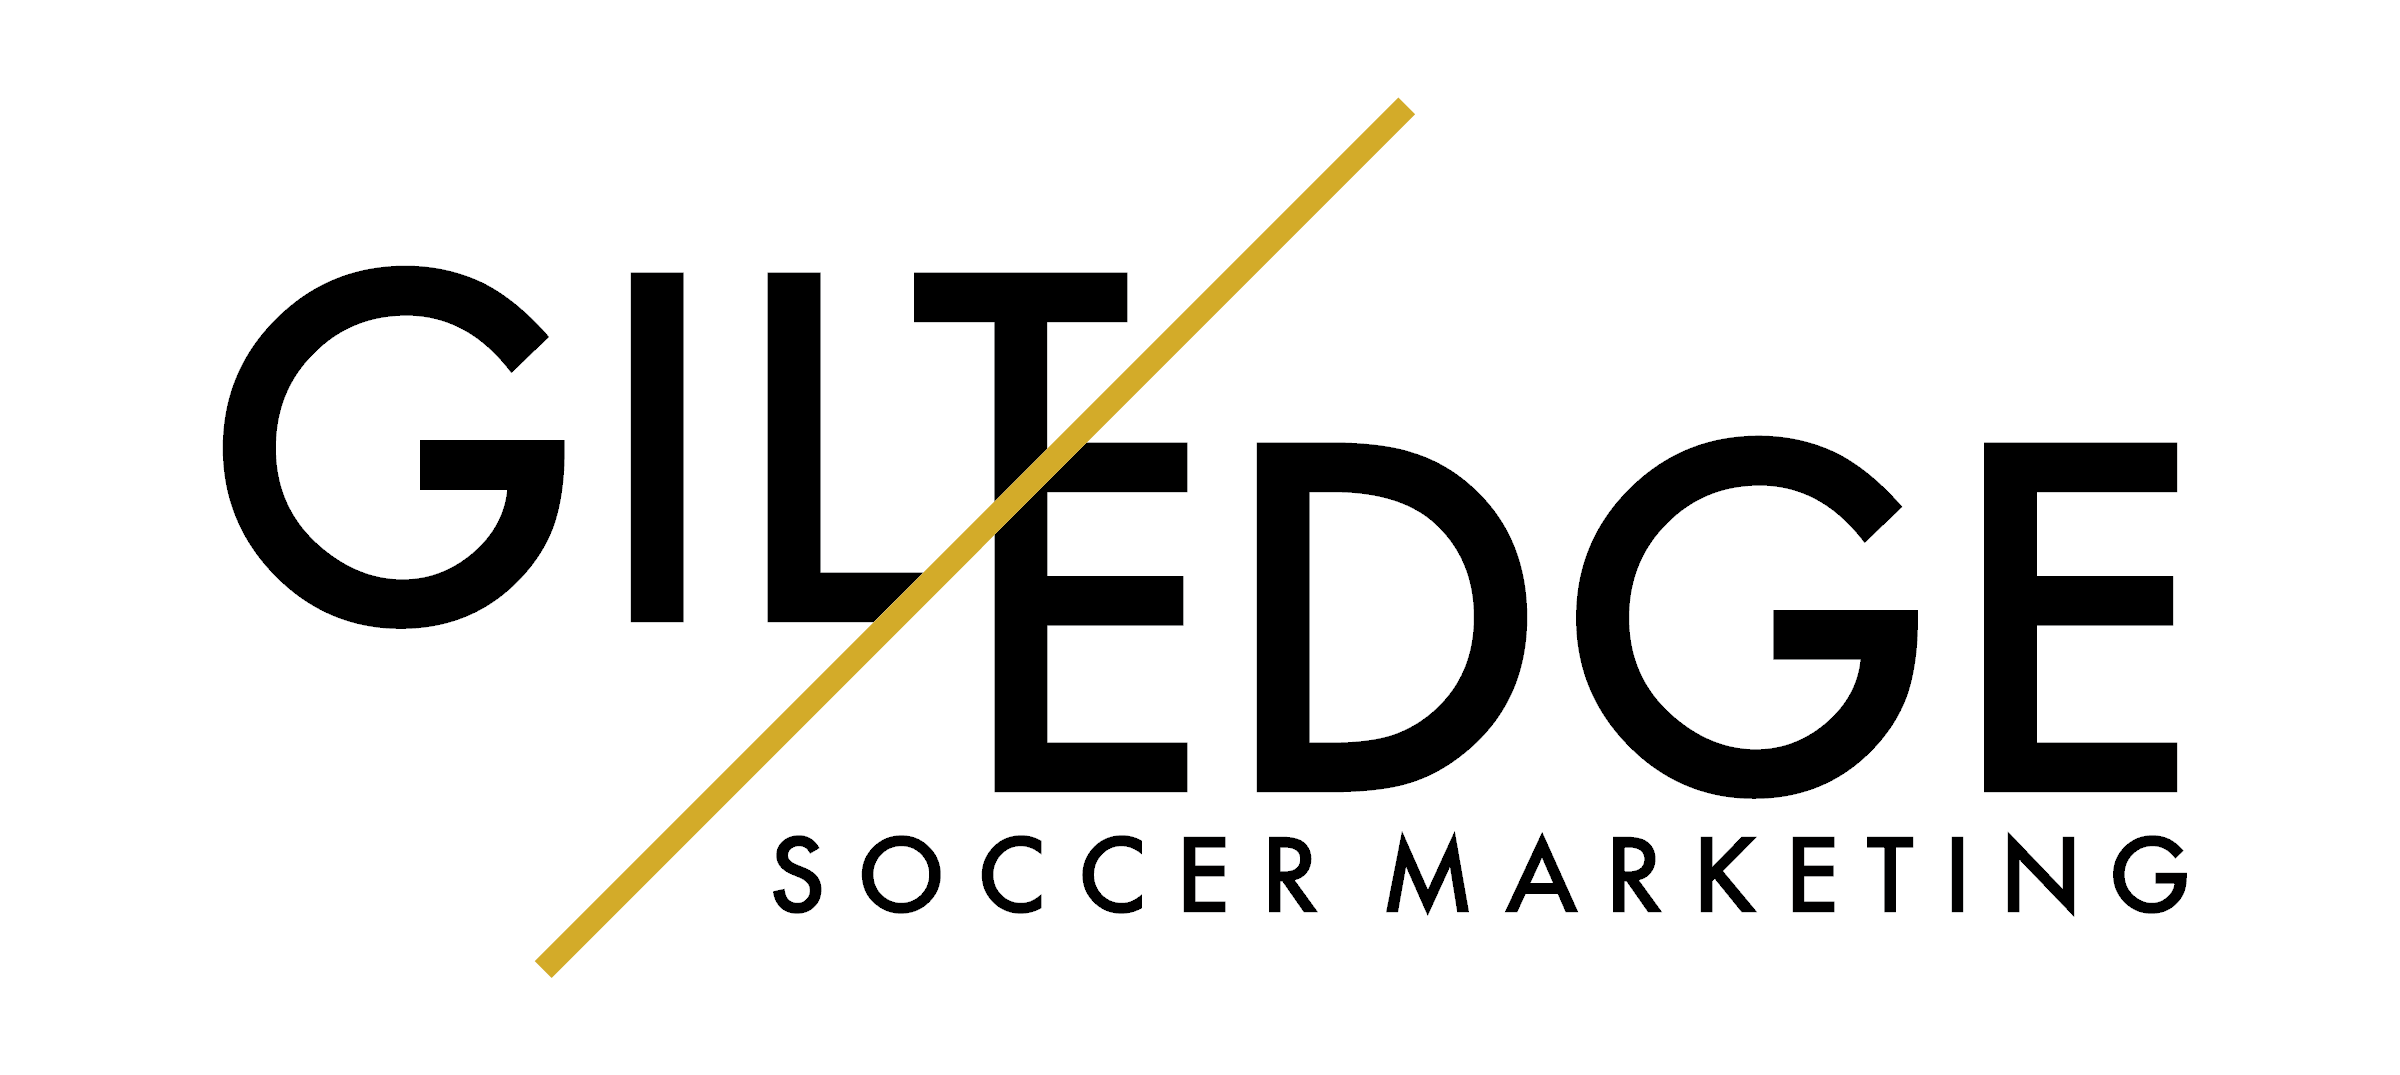 Gilt Edge Soccer Marketing